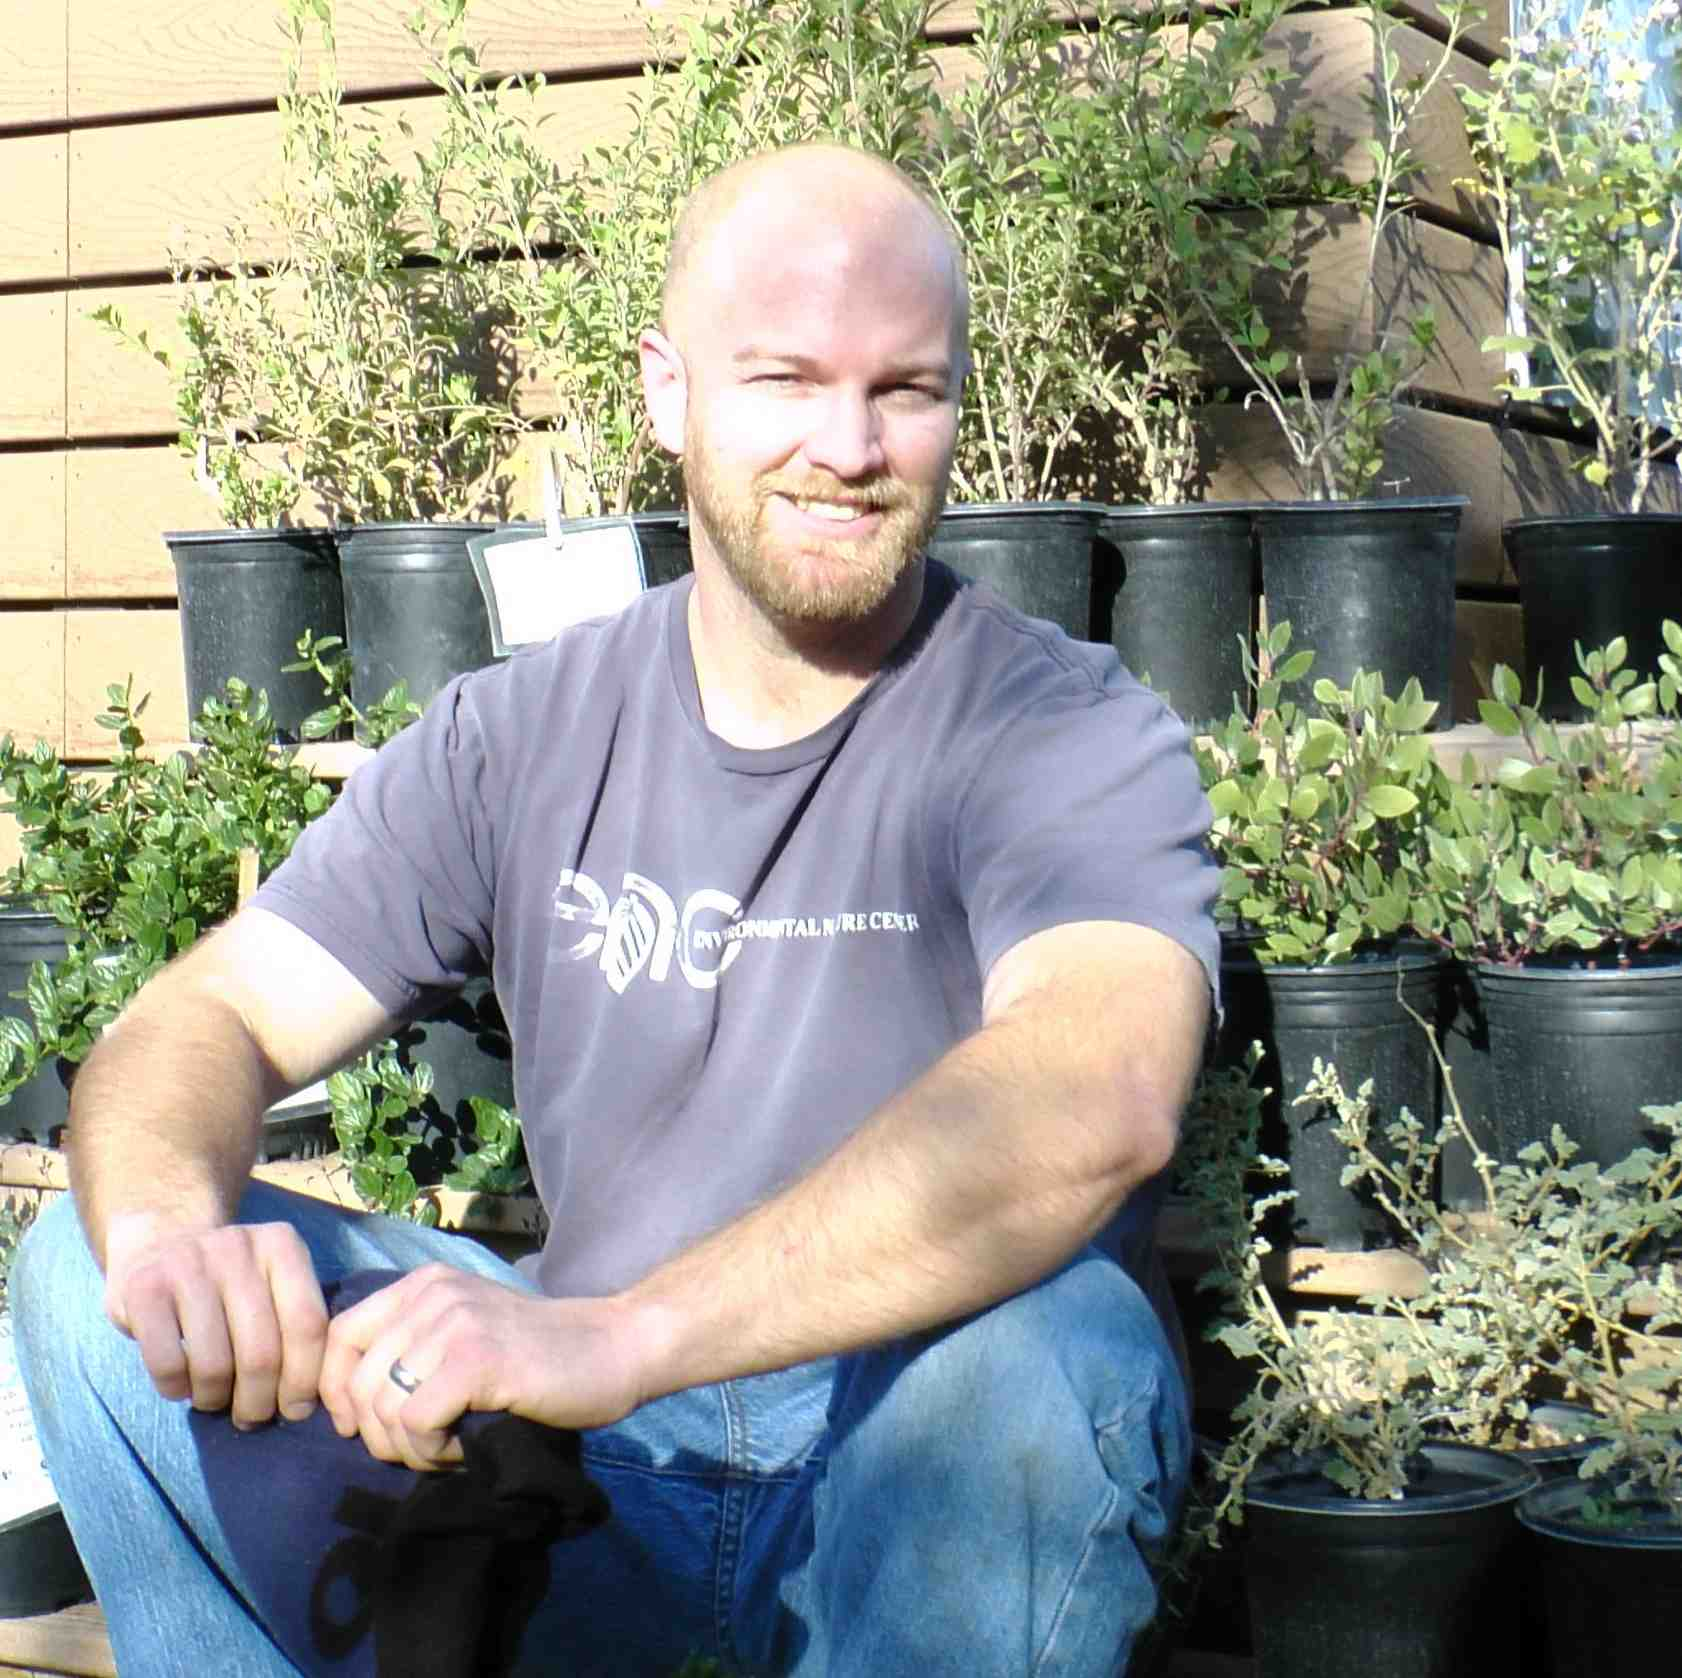 Mike_plants1_square_small